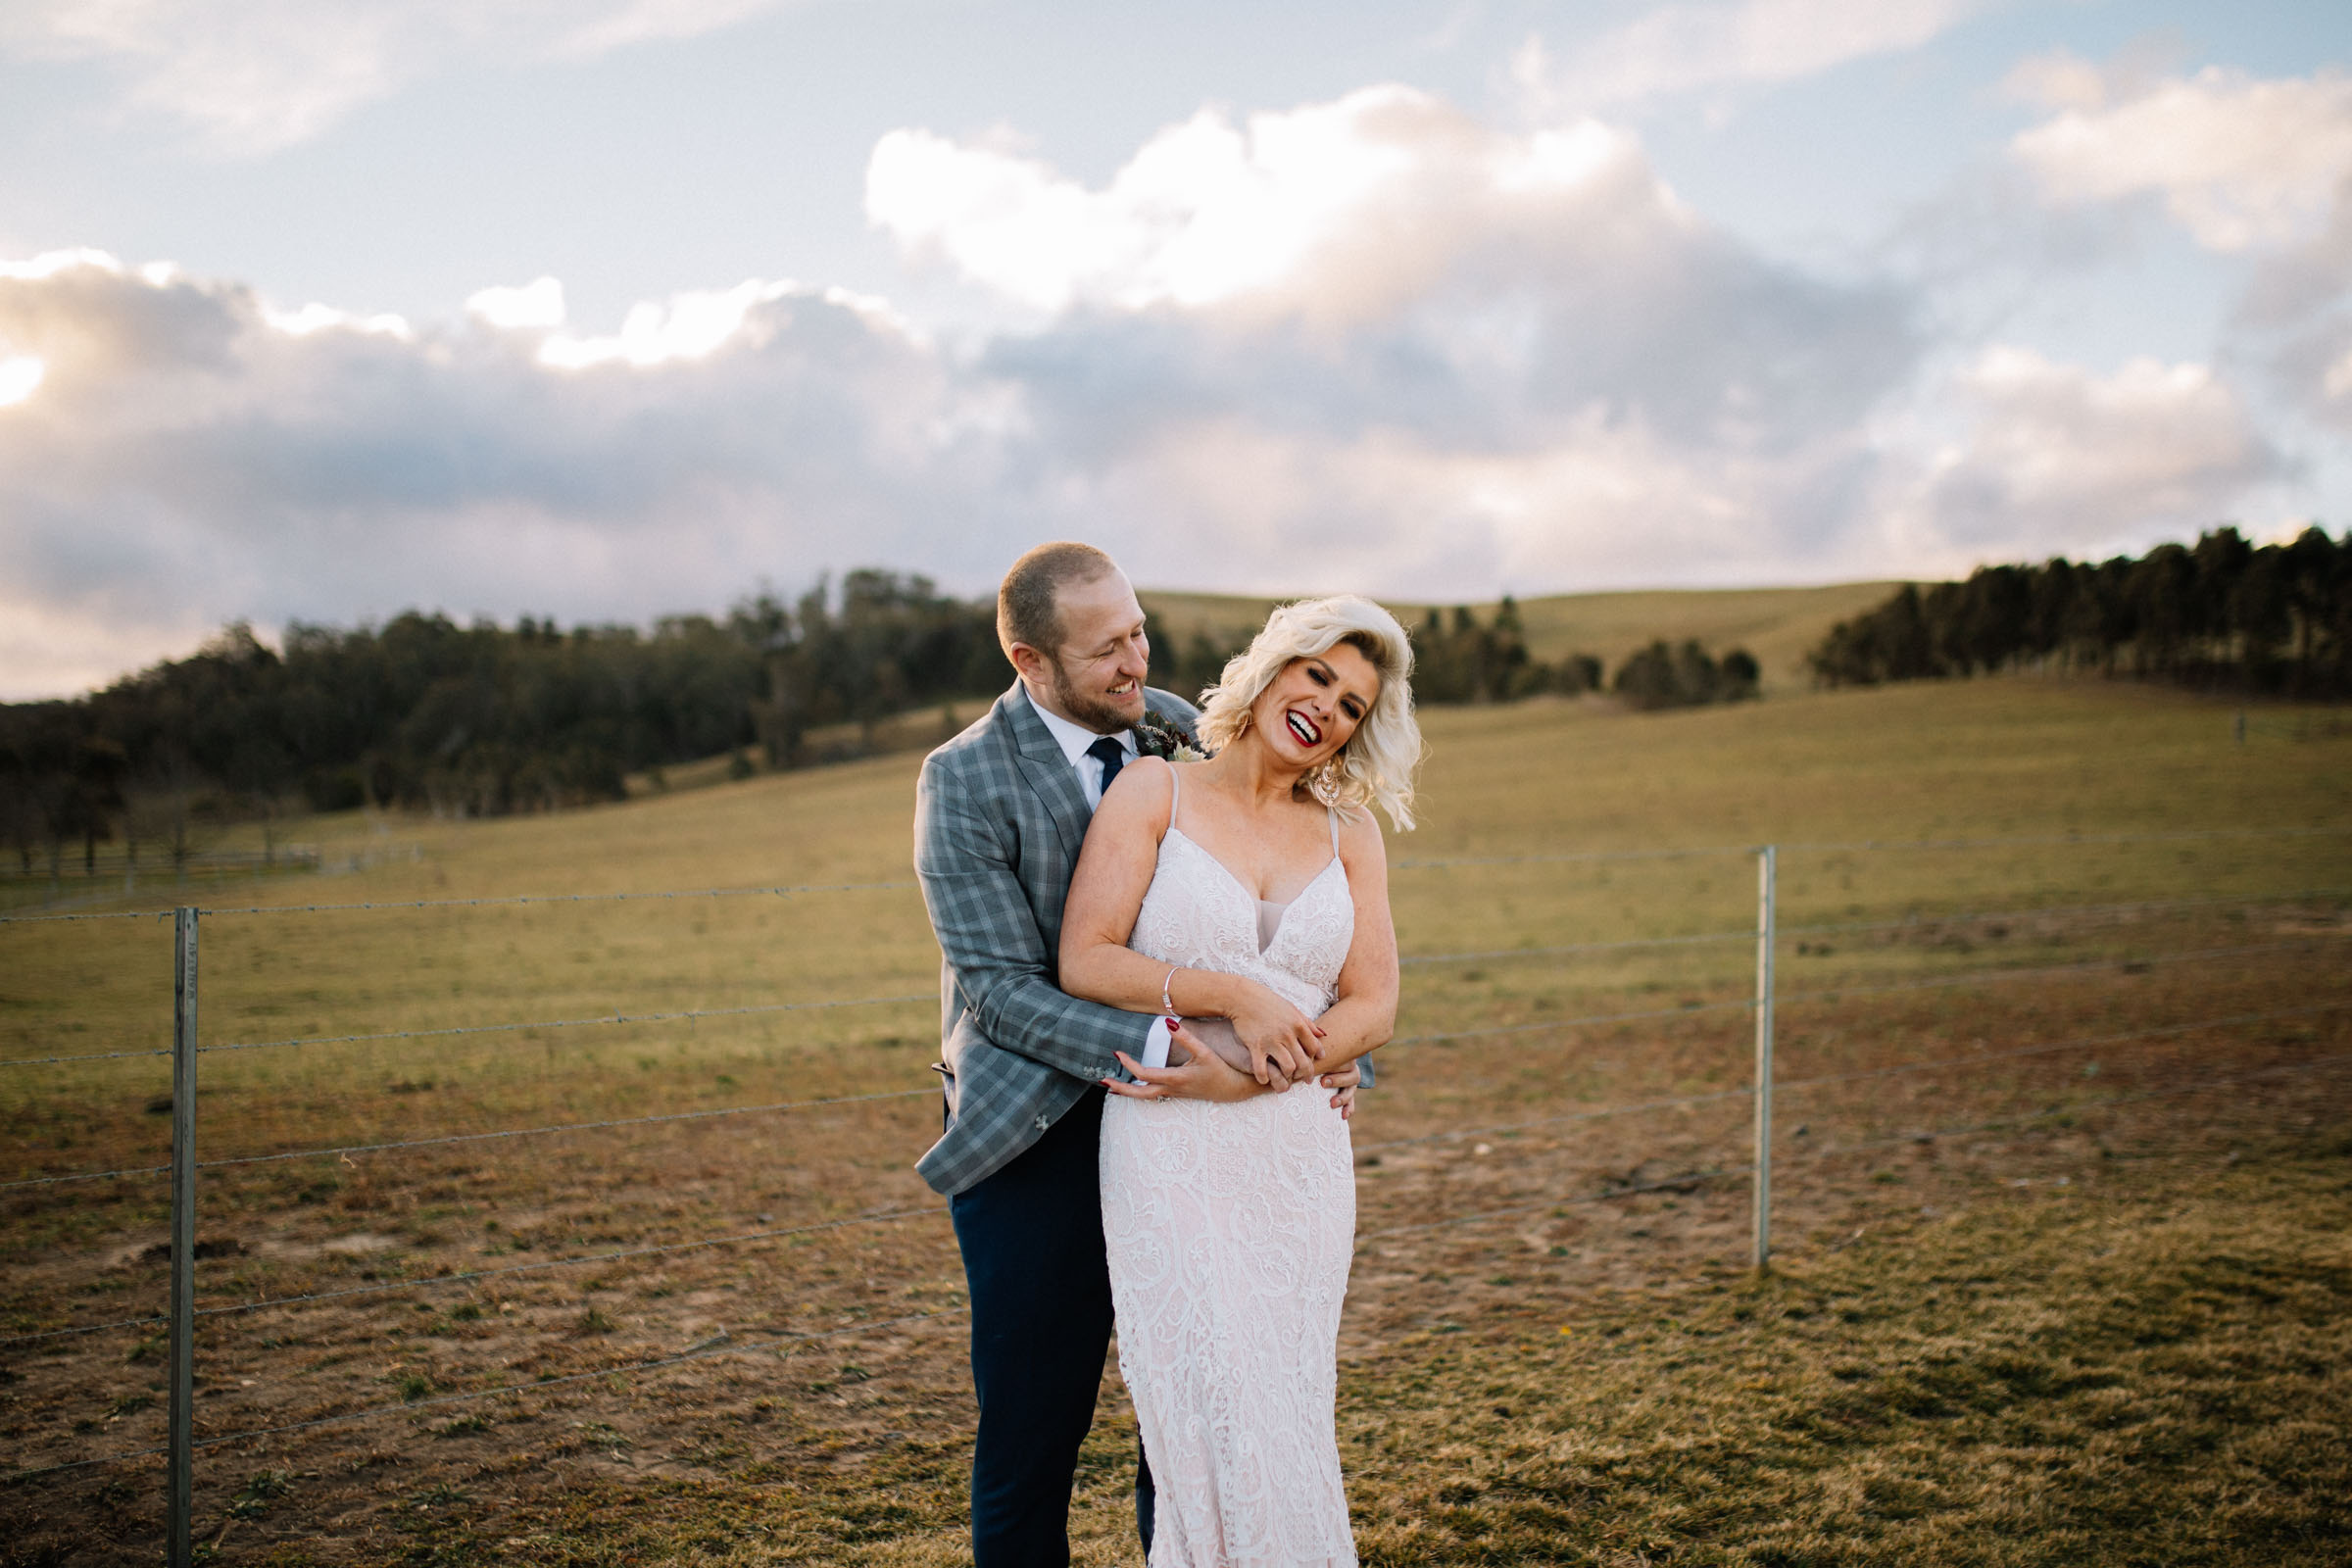 Adrian and Lisa - Wedding 2019-276.jpg